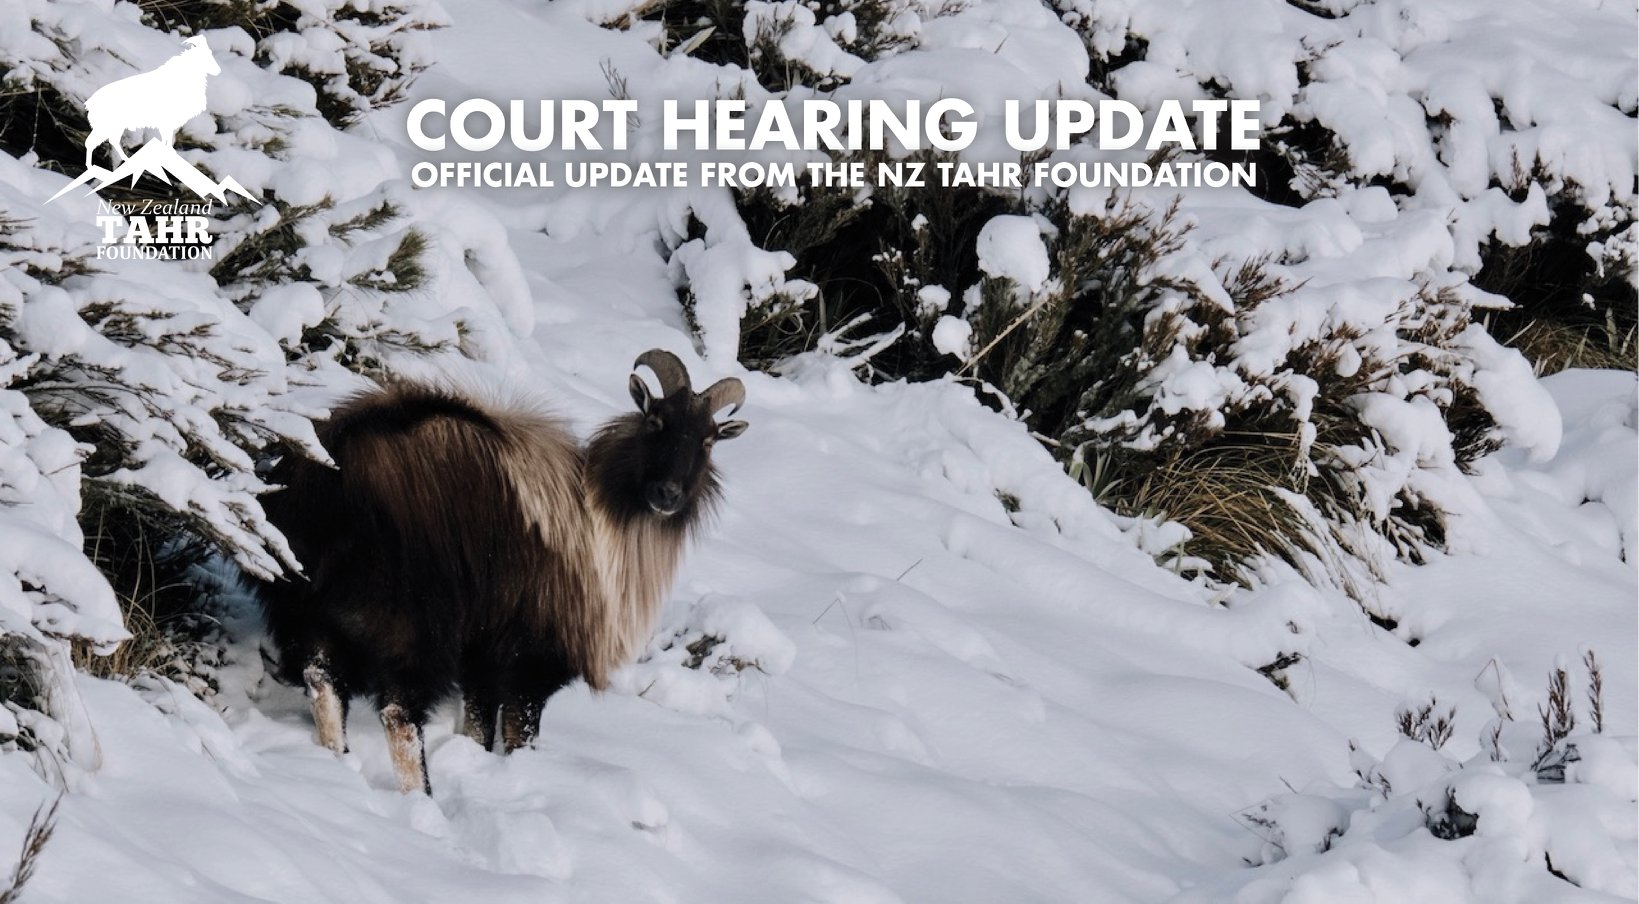 Court Hearing Update